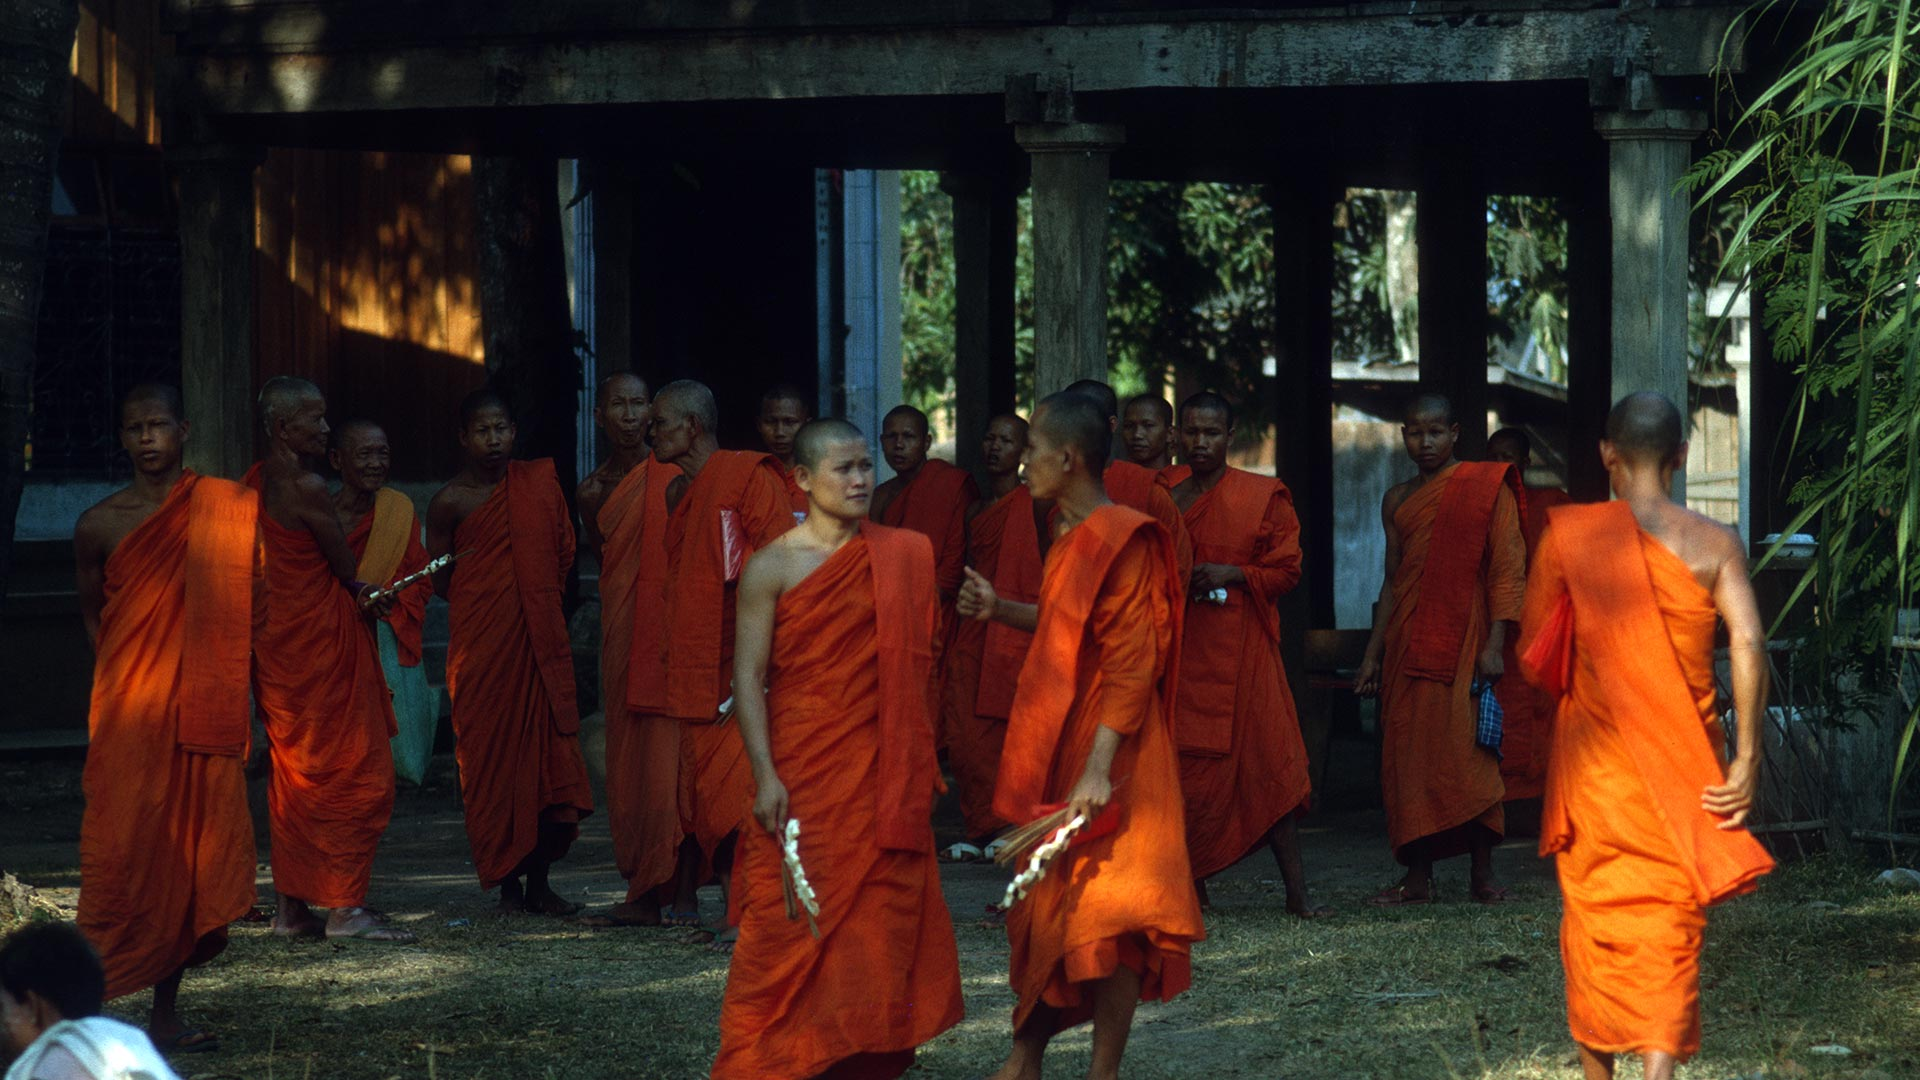 group of monks dressed in orange robes standing outside